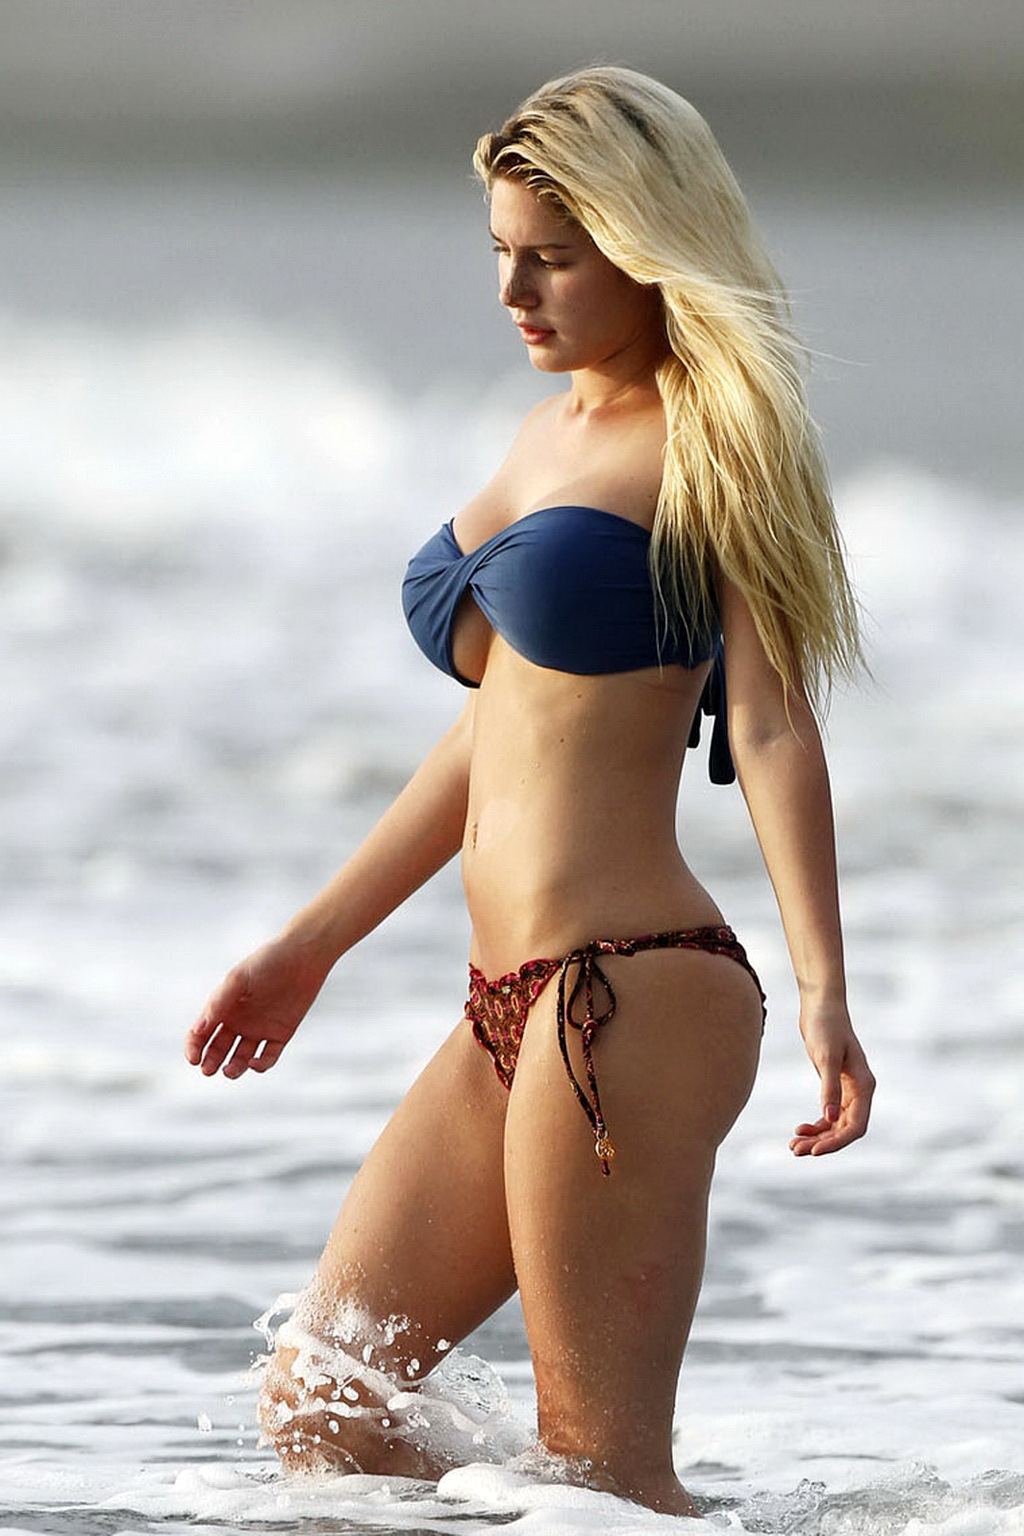 That whore Heidi montag boob